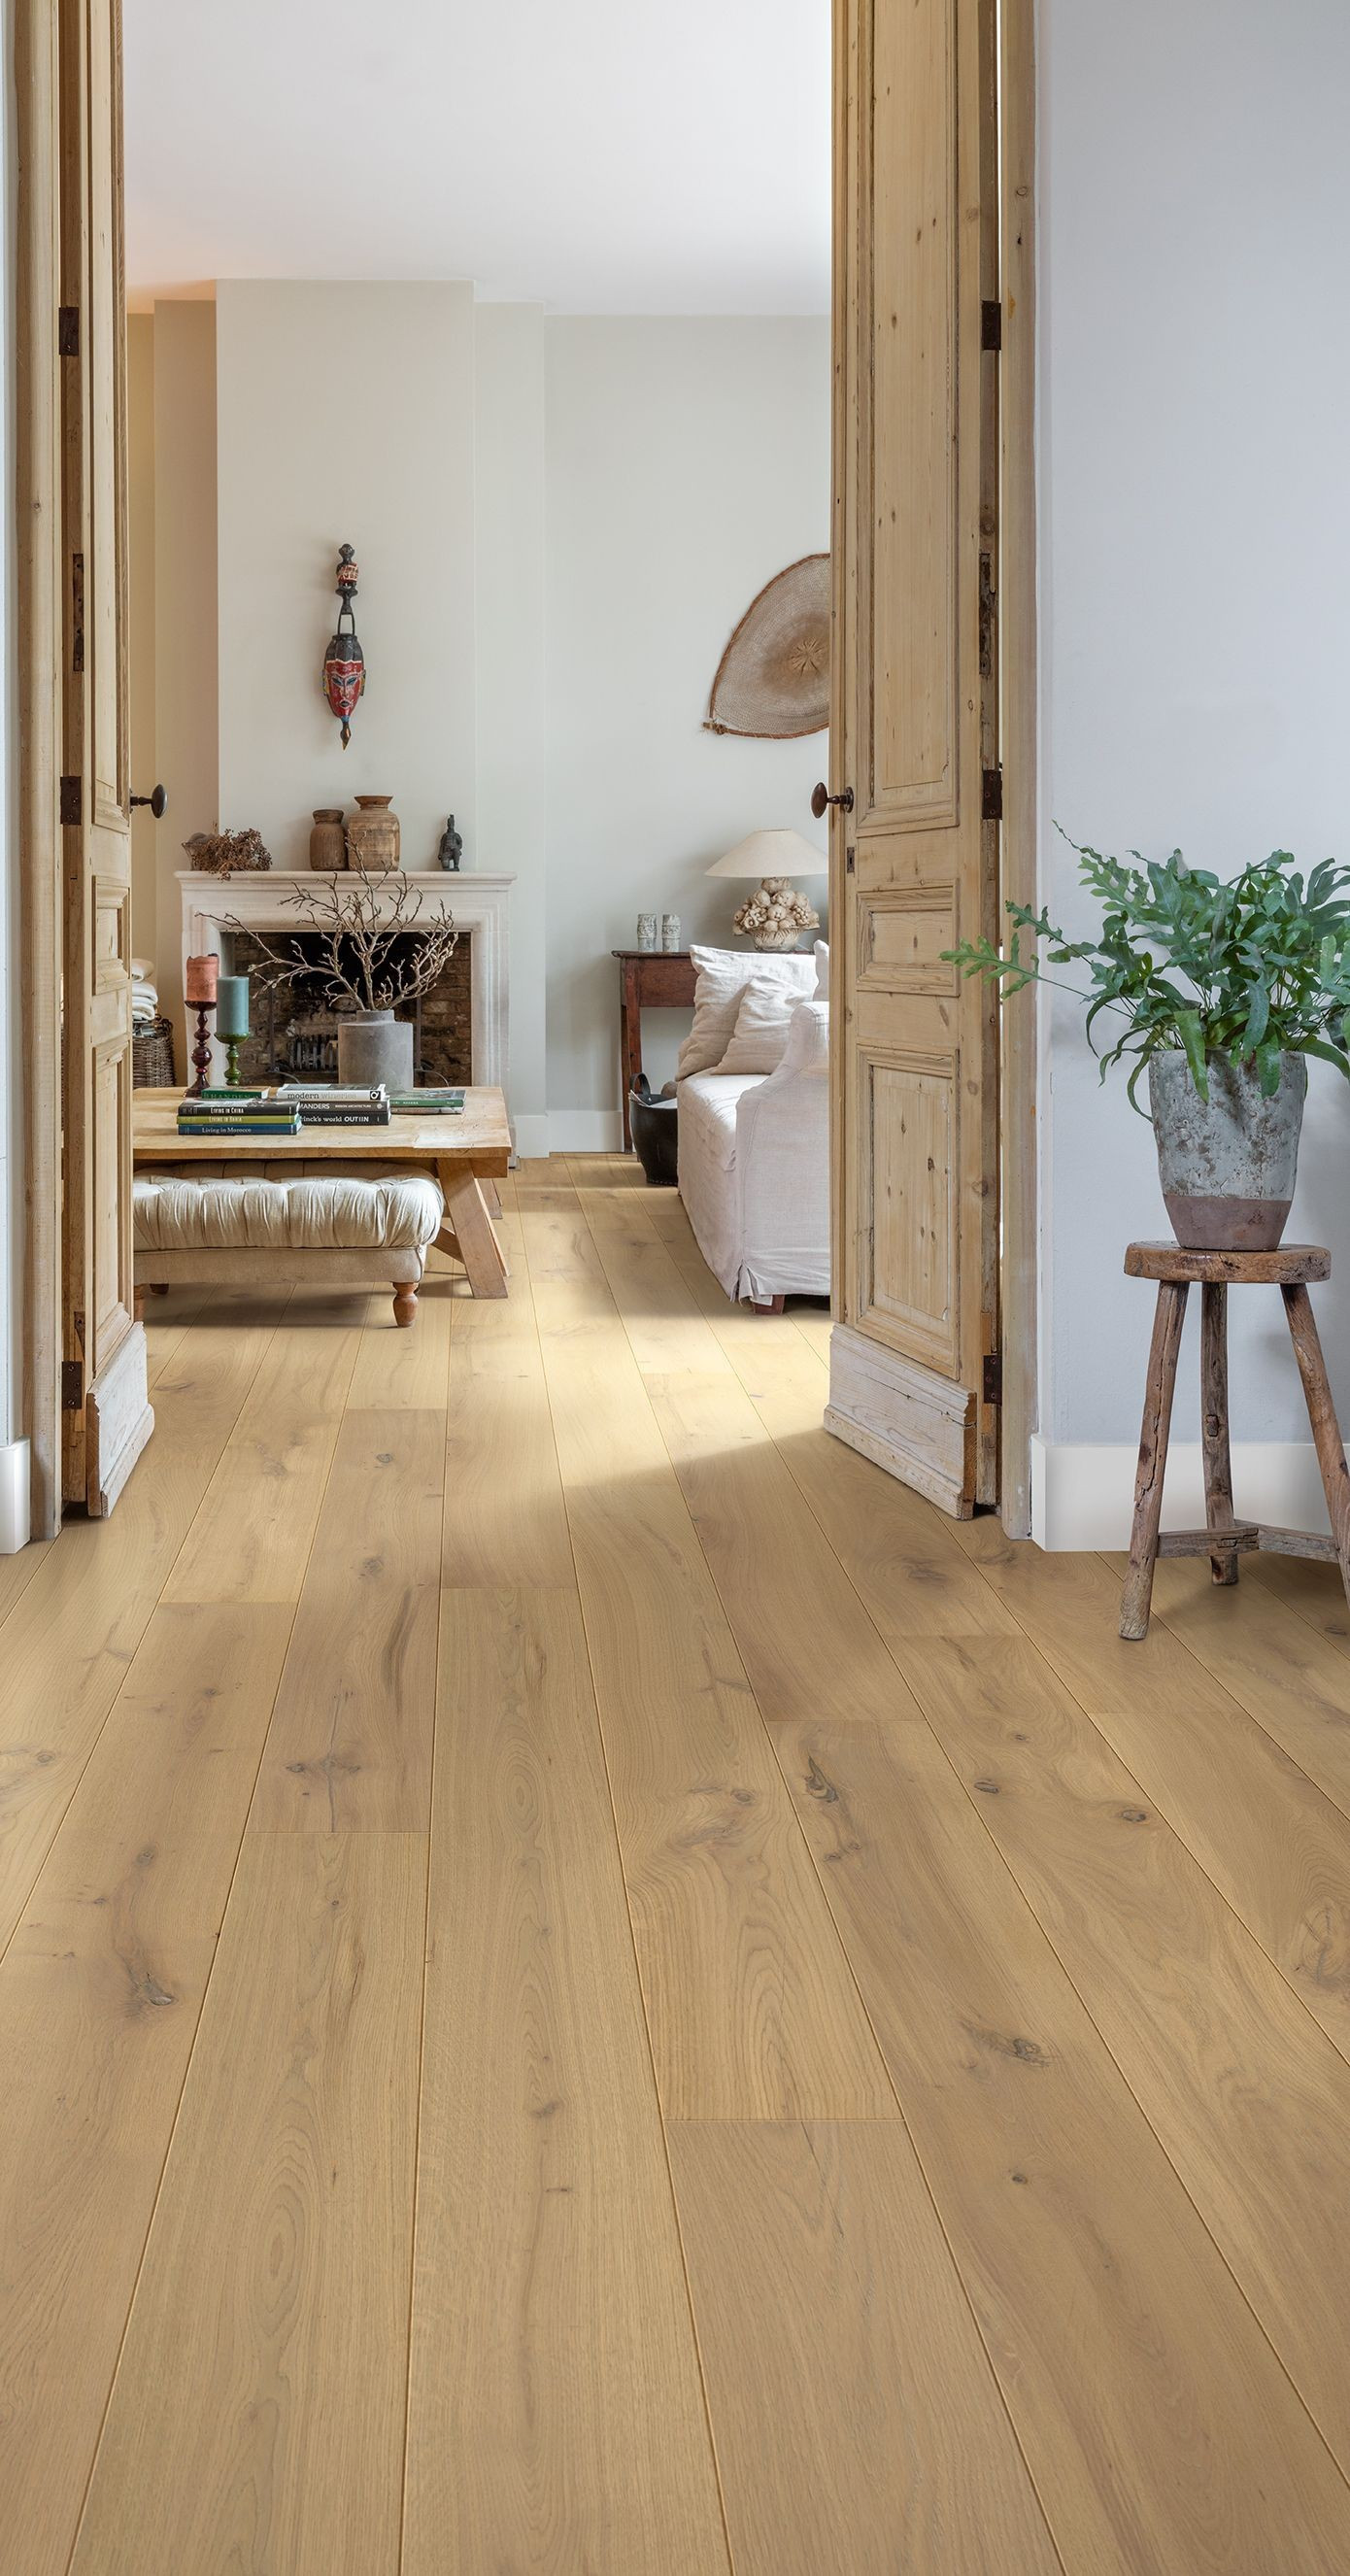 ash hardwood flooring reviews of hardwood floor wood wood flooring installation in swiss cottage inside hardwood floor wood wood flooring design ideas fresh quick step hardwood flooring